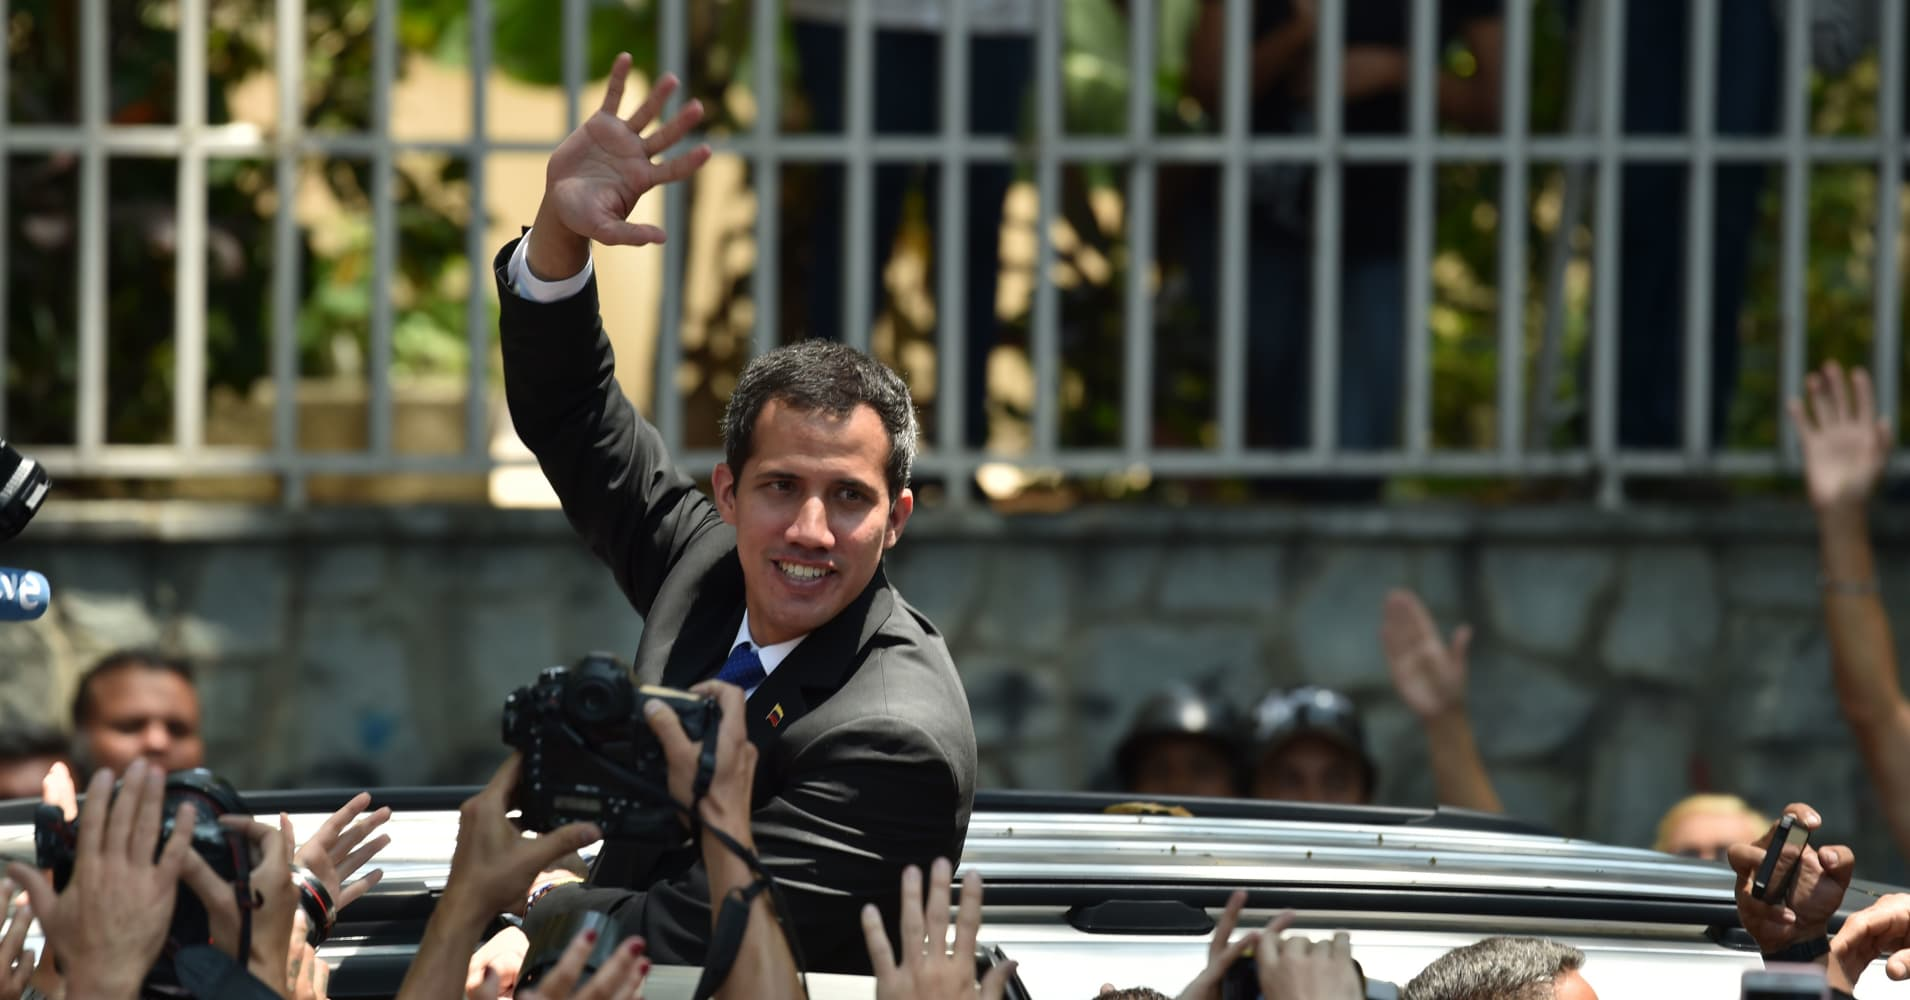 Venezuela crisis: Guaido calls for mass protests to try to oust Maduro